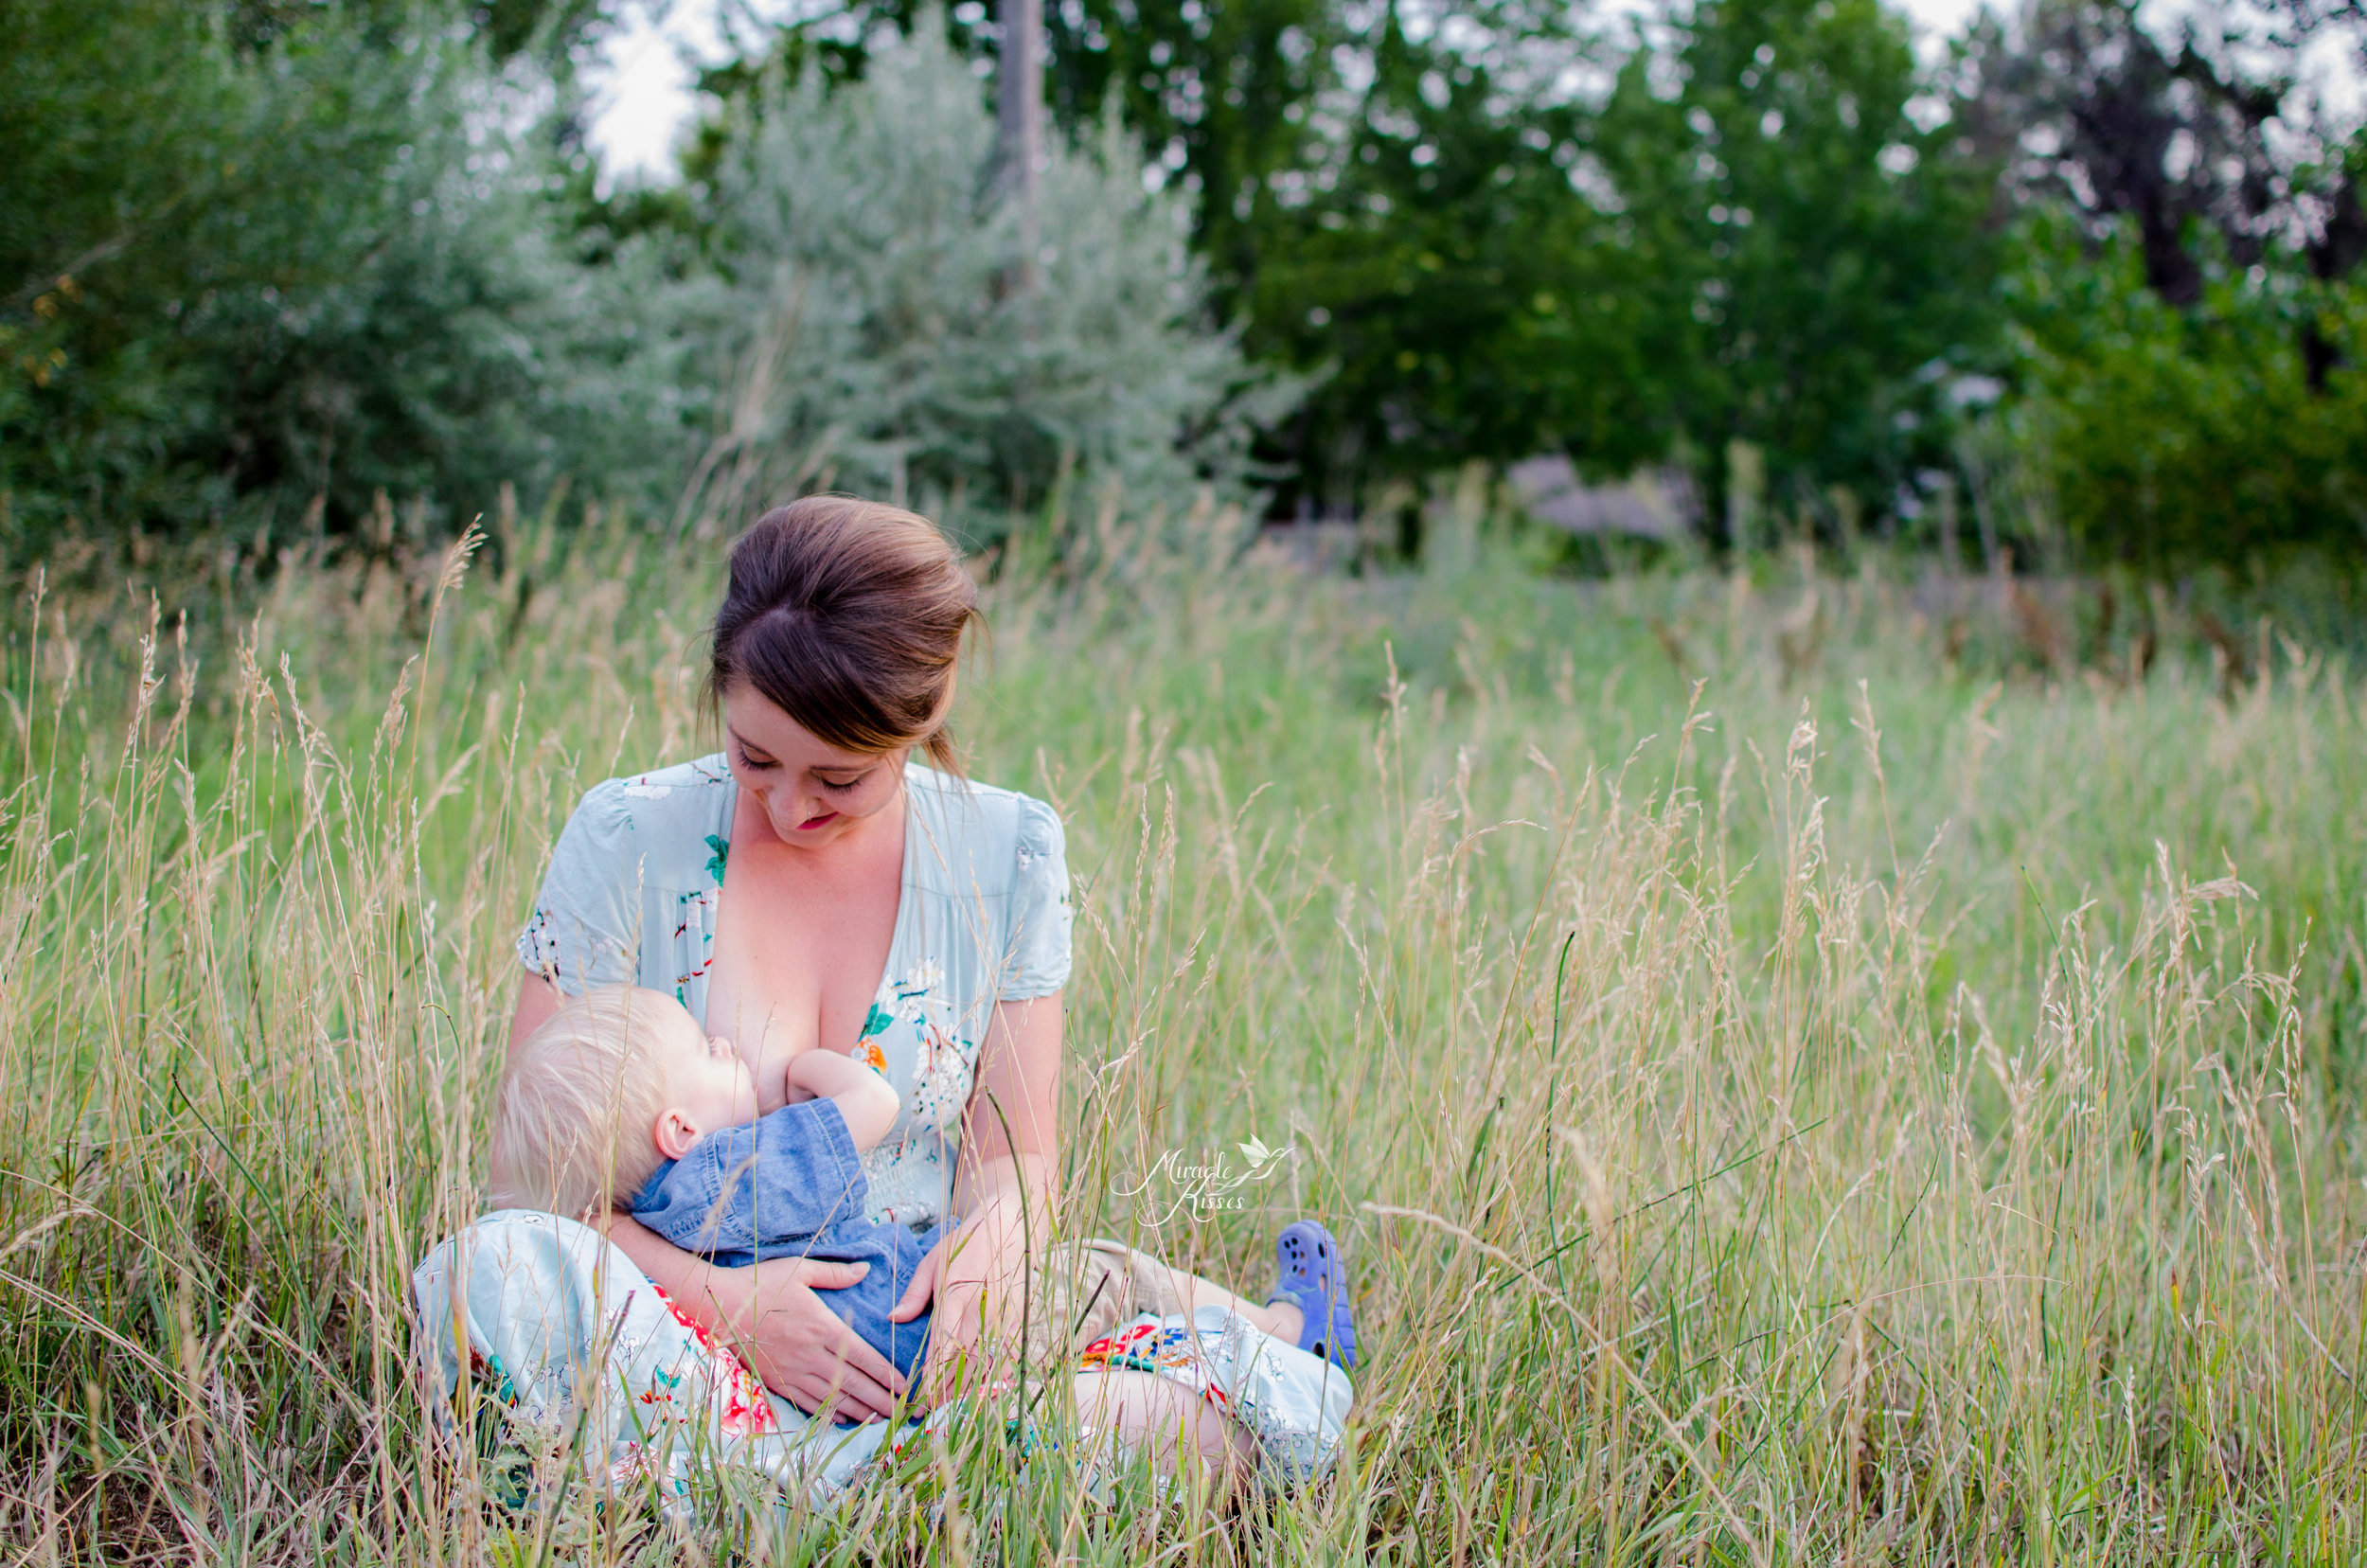 breastfeeding in the grass, normalize breastfeeding, mother and son photo